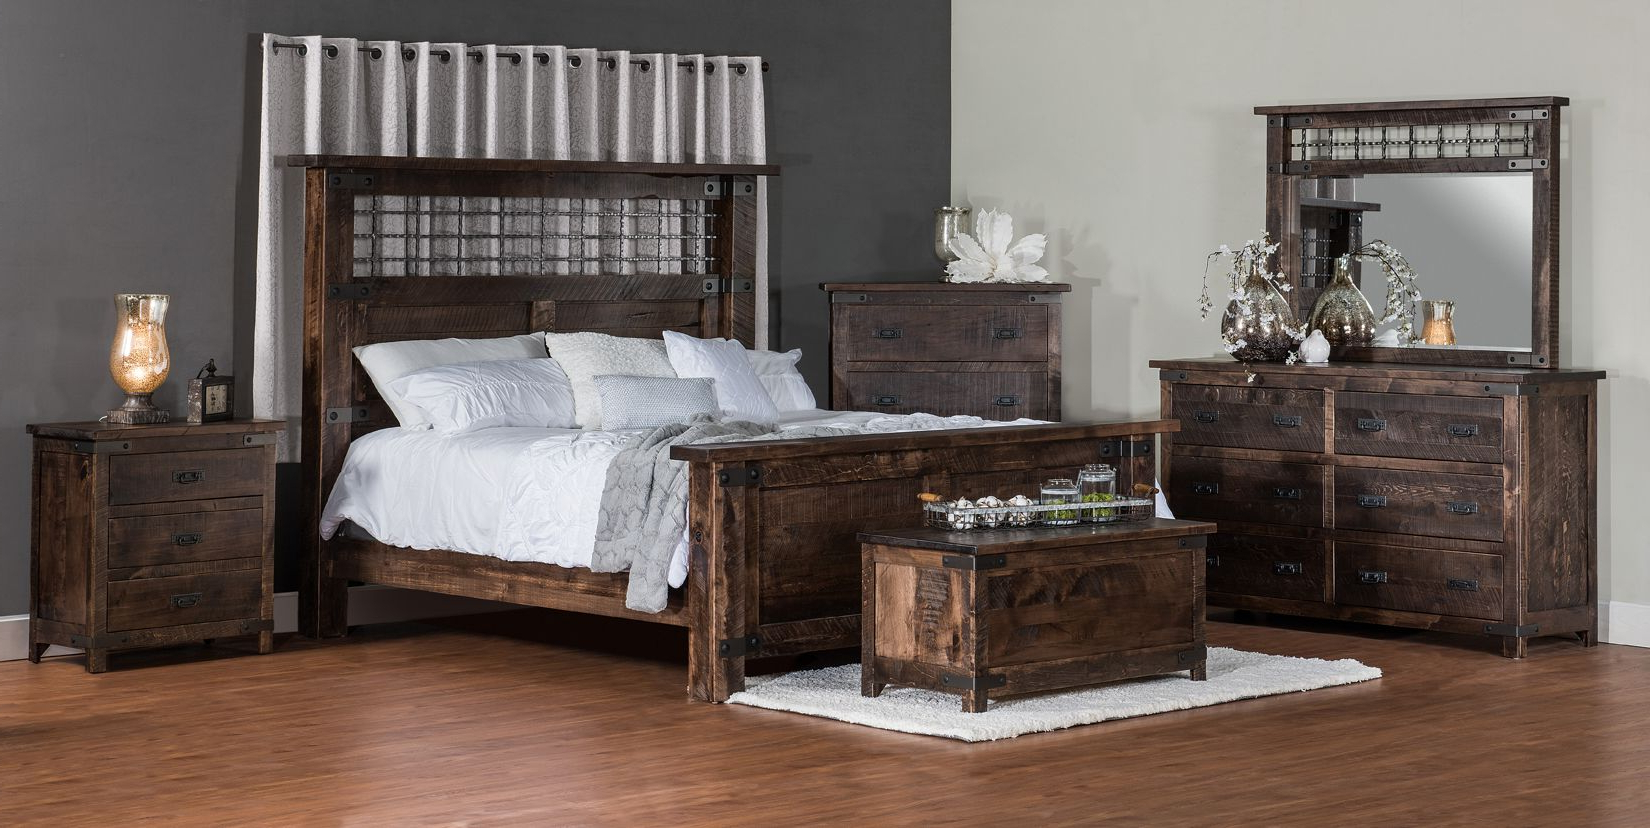 [%Up To 33% Off Ironwood Bedroom Set – Amish Outlet Store Pertaining To Current Ironwood 4 Door Sideboards|Ironwood 4 Door Sideboards Intended For Trendy Up To 33% Off Ironwood Bedroom Set – Amish Outlet Store|Popular Ironwood 4 Door Sideboards For Up To 33% Off Ironwood Bedroom Set – Amish Outlet Store|Recent Up To 33% Off Ironwood Bedroom Set – Amish Outlet Store Throughout Ironwood 4 Door Sideboards%] (View 1 of 20)